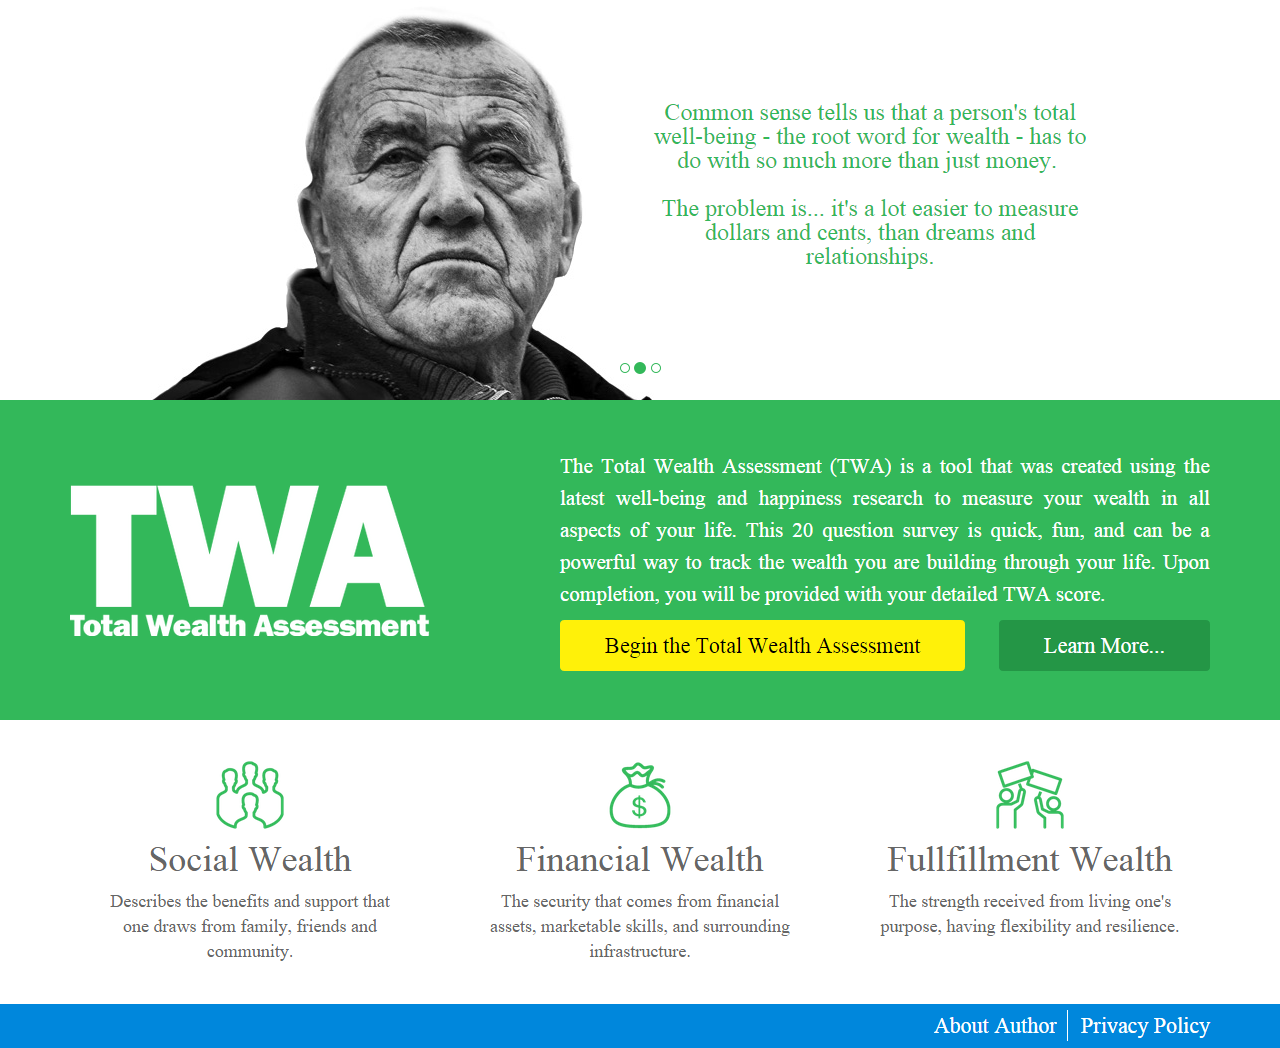 Responsive Design with Development a Professional Website for Total Wealth Assessment